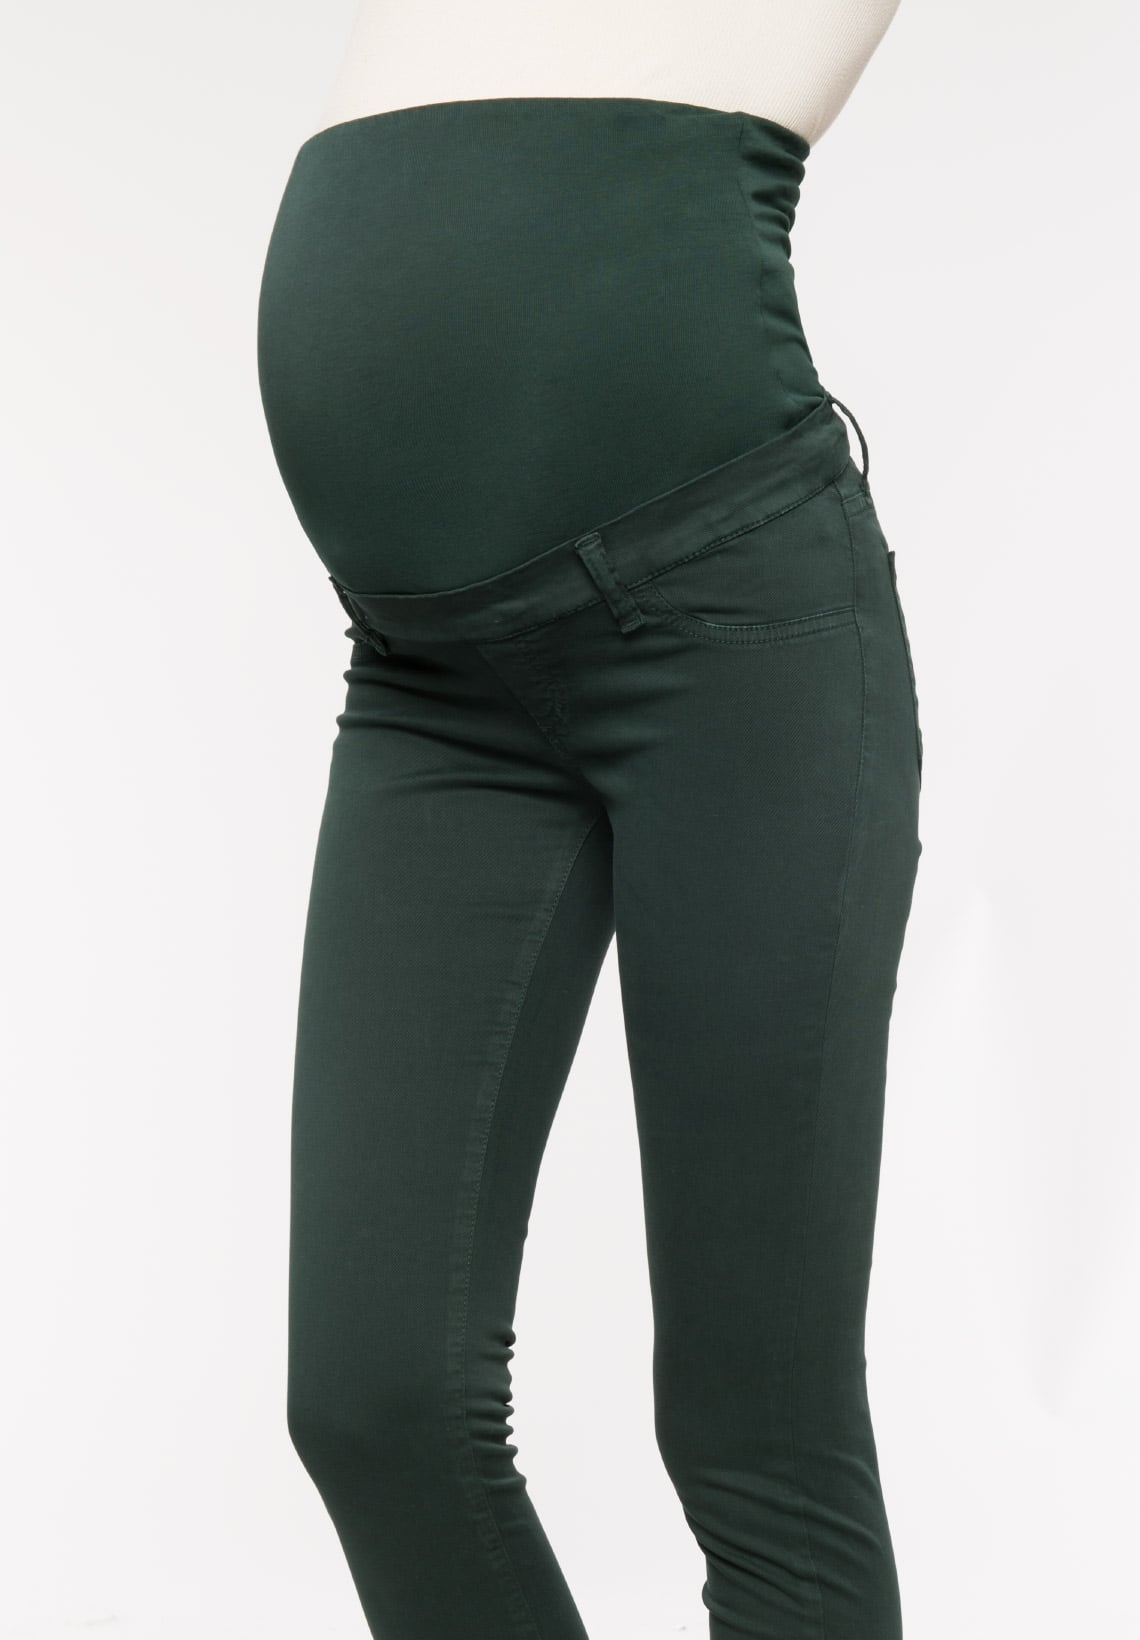 8f0bc78f77 ... NEO - Maternity trousers with over belly band - Envie de Fraise ...